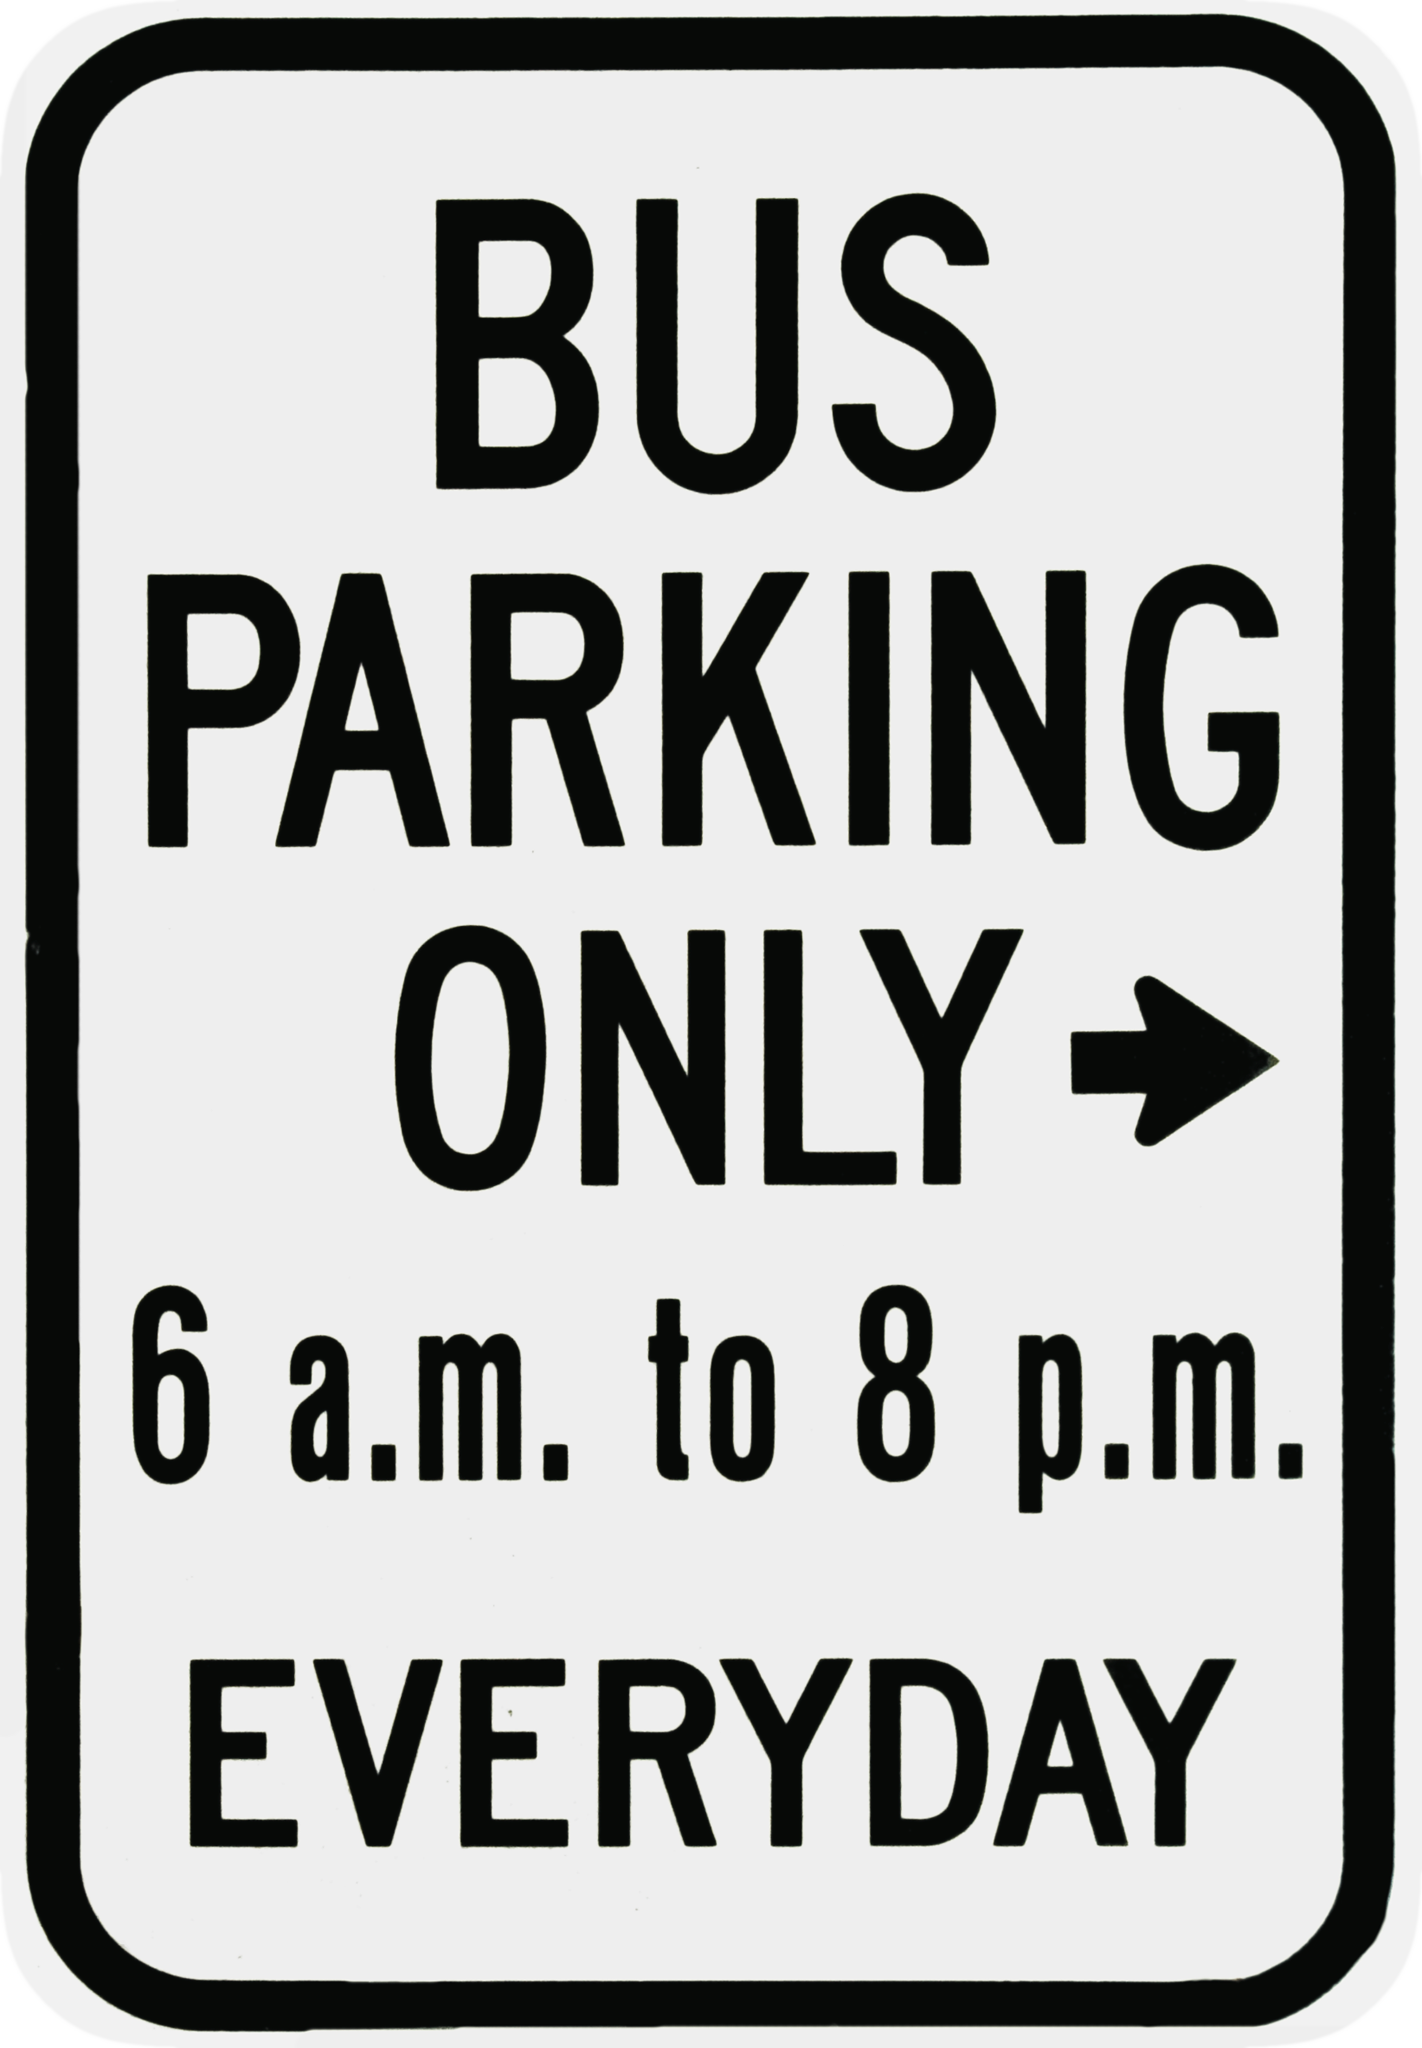 Bus Parking Only Everyday.png